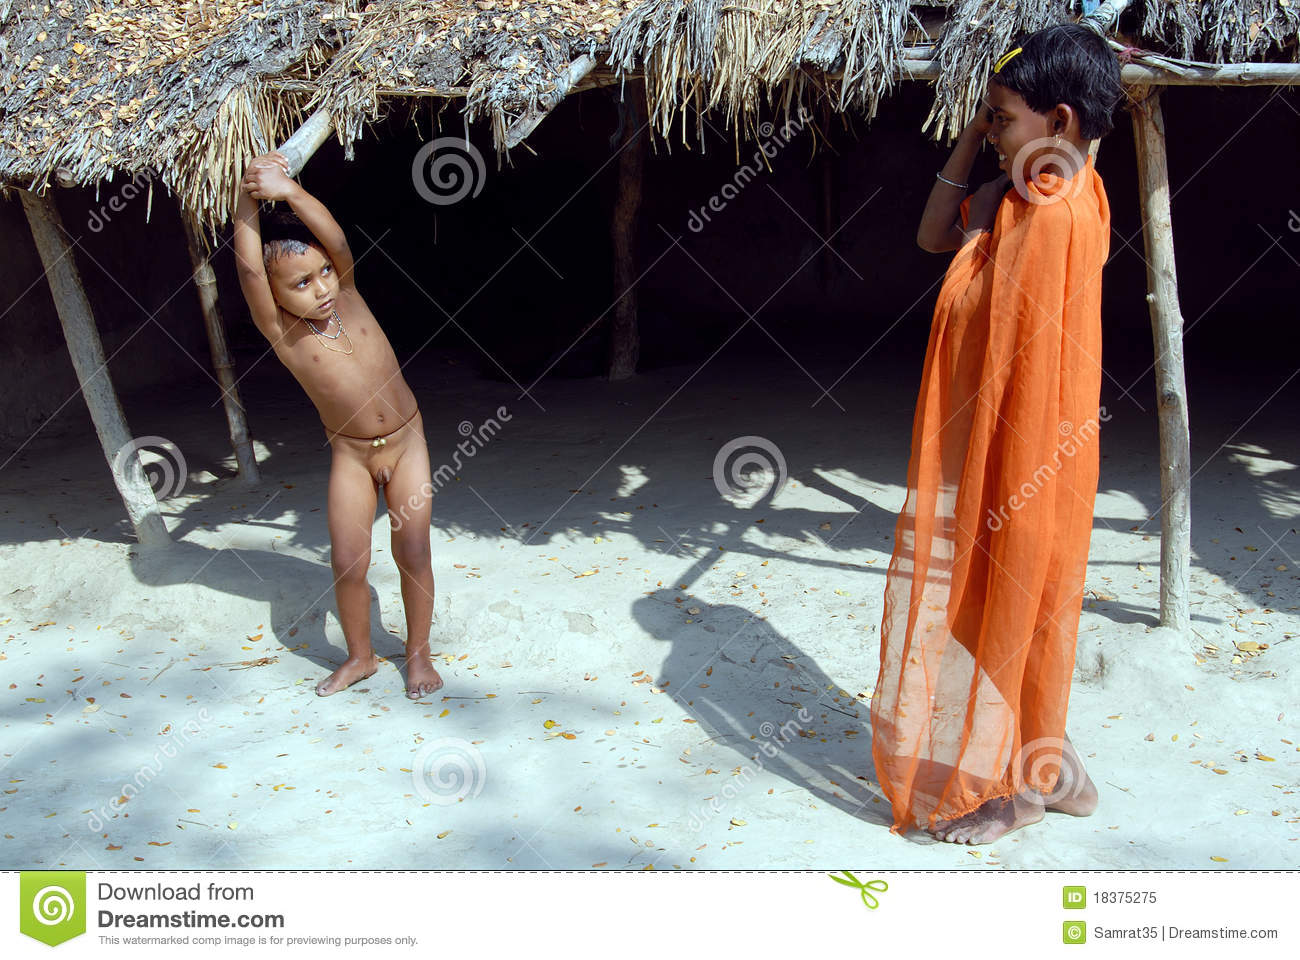 West Bengal Village Girl Naked